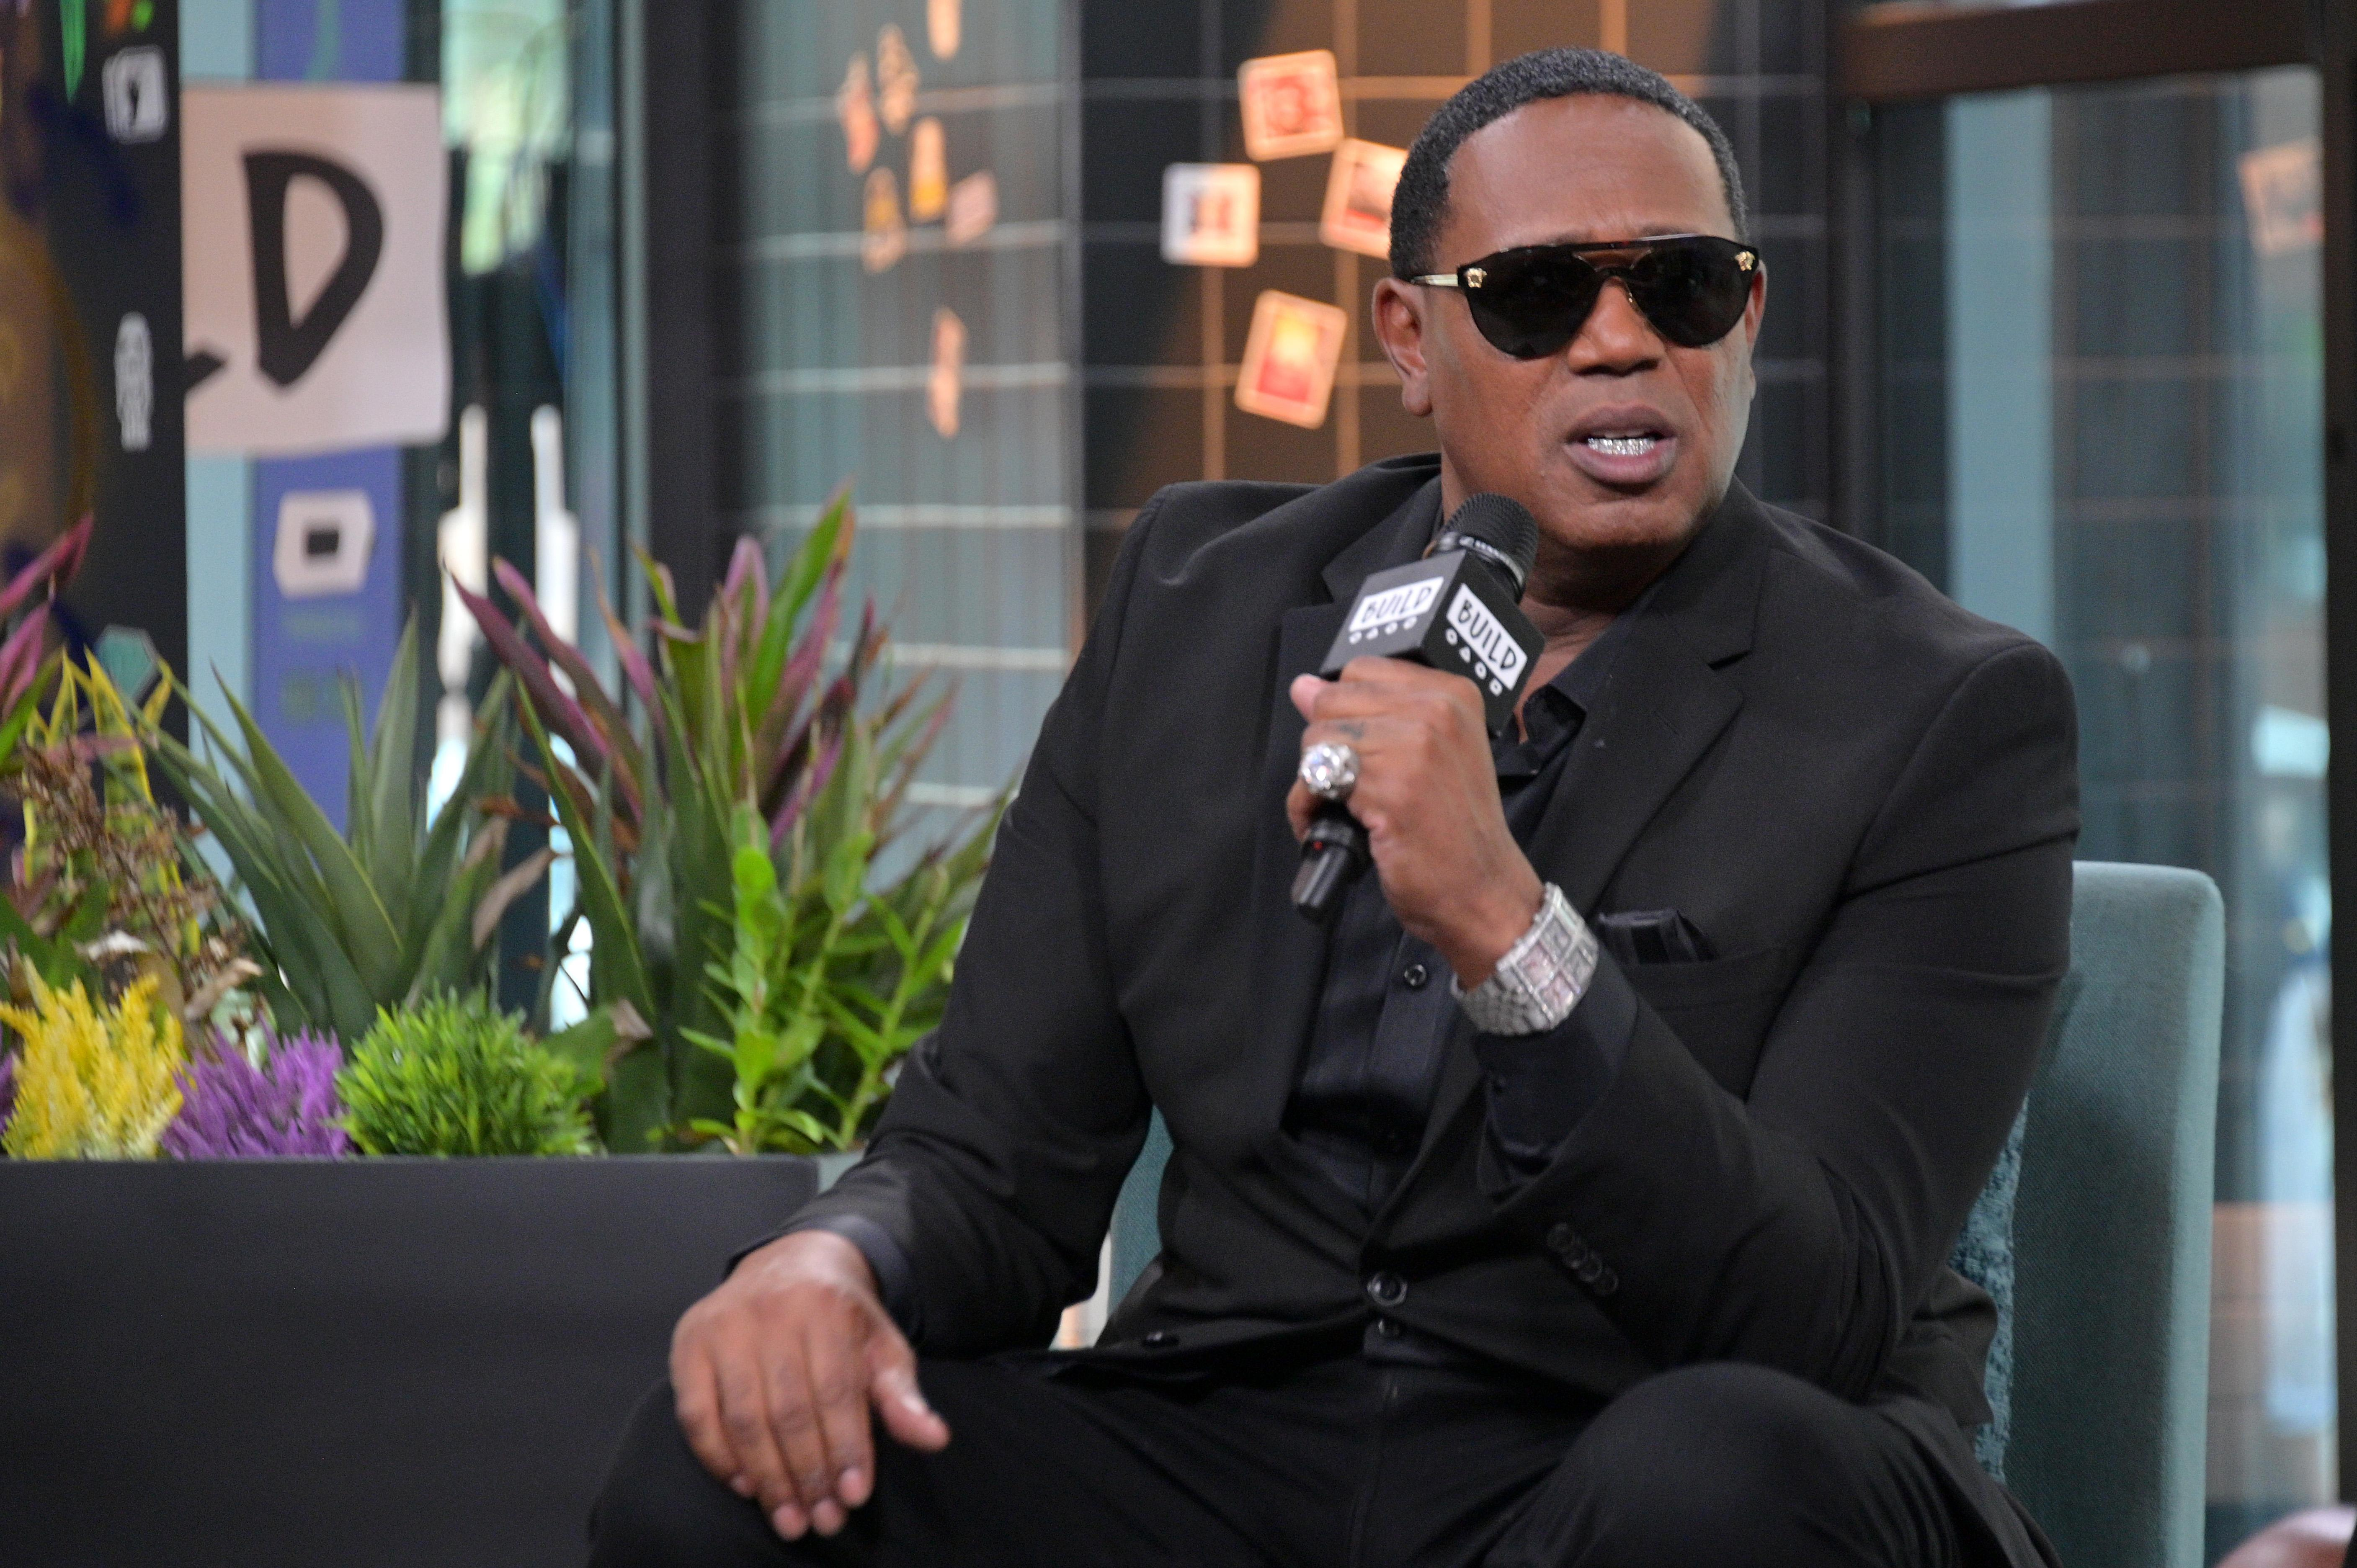 Music mogul Master P is coming for Hollywood's bottom line: 'It's time for the underdogs to take over'